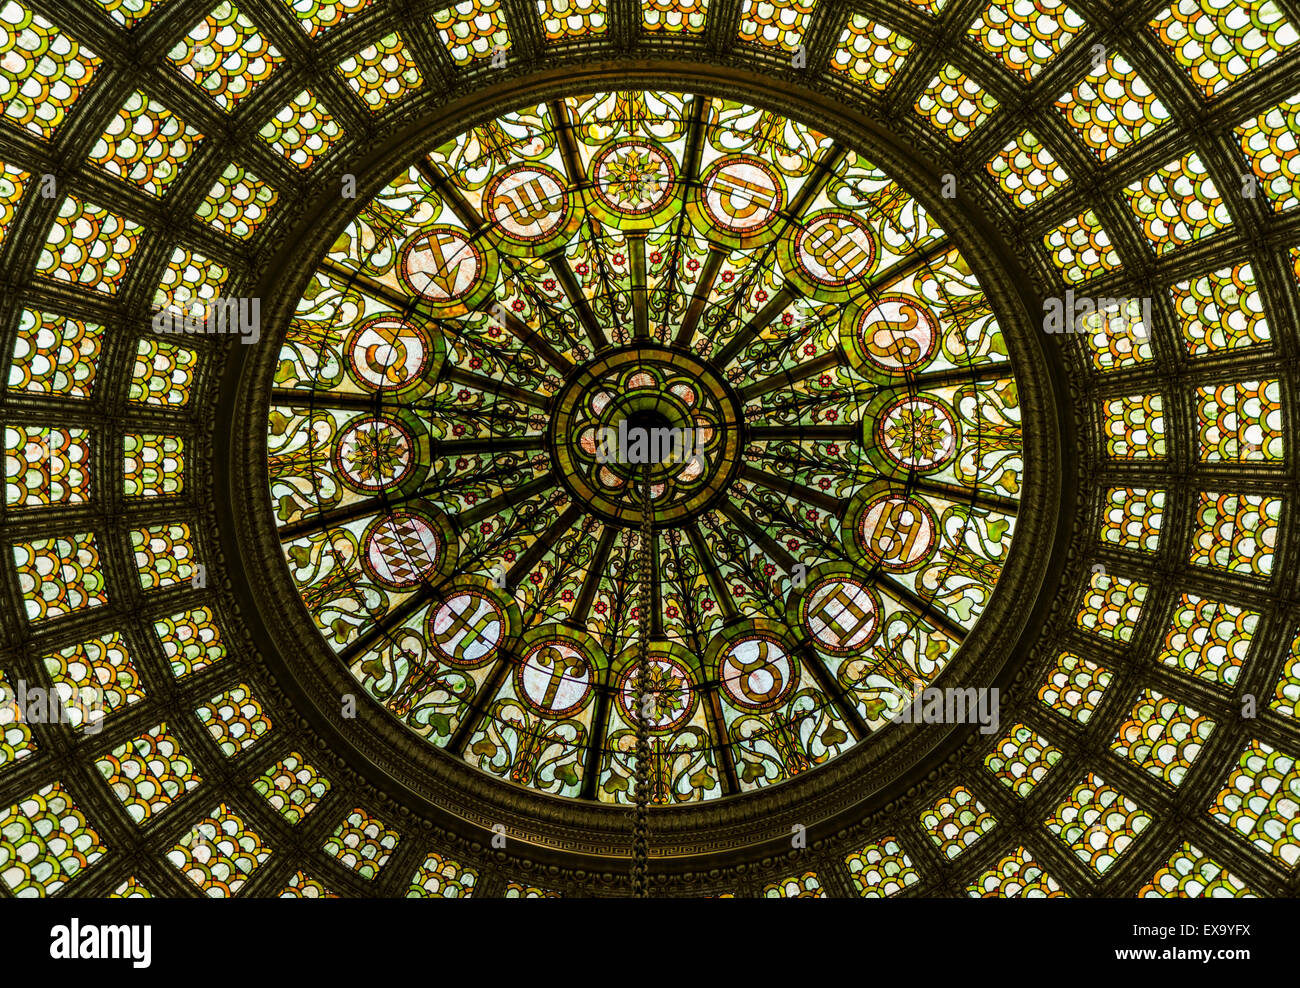 detail of domed skylight, Chicago Cultural Center, formerly the Chicago Public Library, Chicago, Illinois, USA - Stock Image